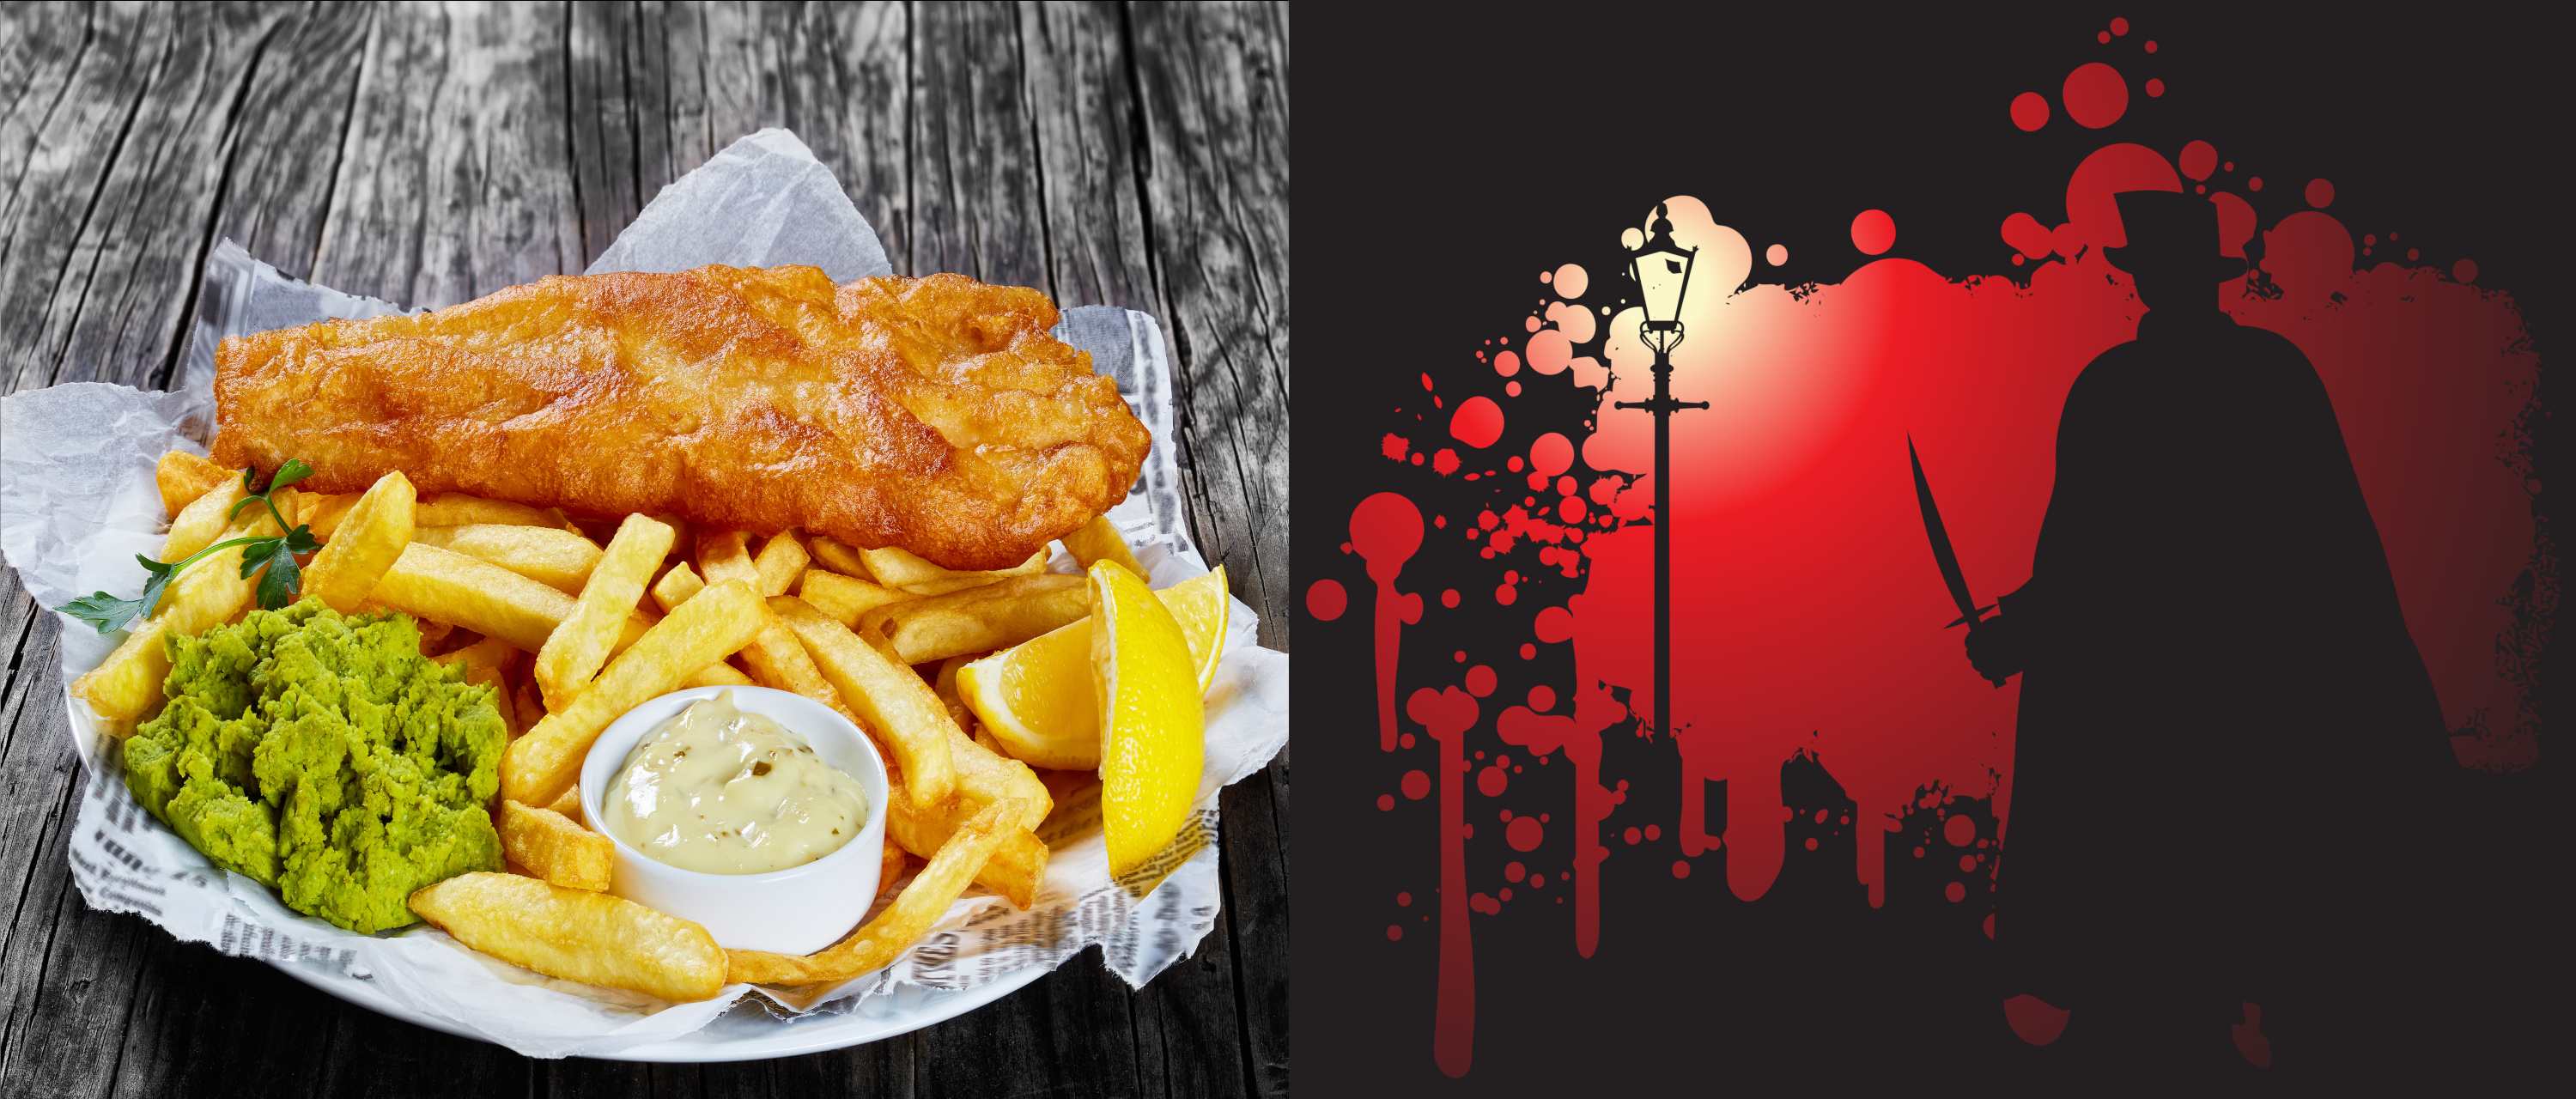 Jack The Ripper Tour + East End Fish & Chips £25